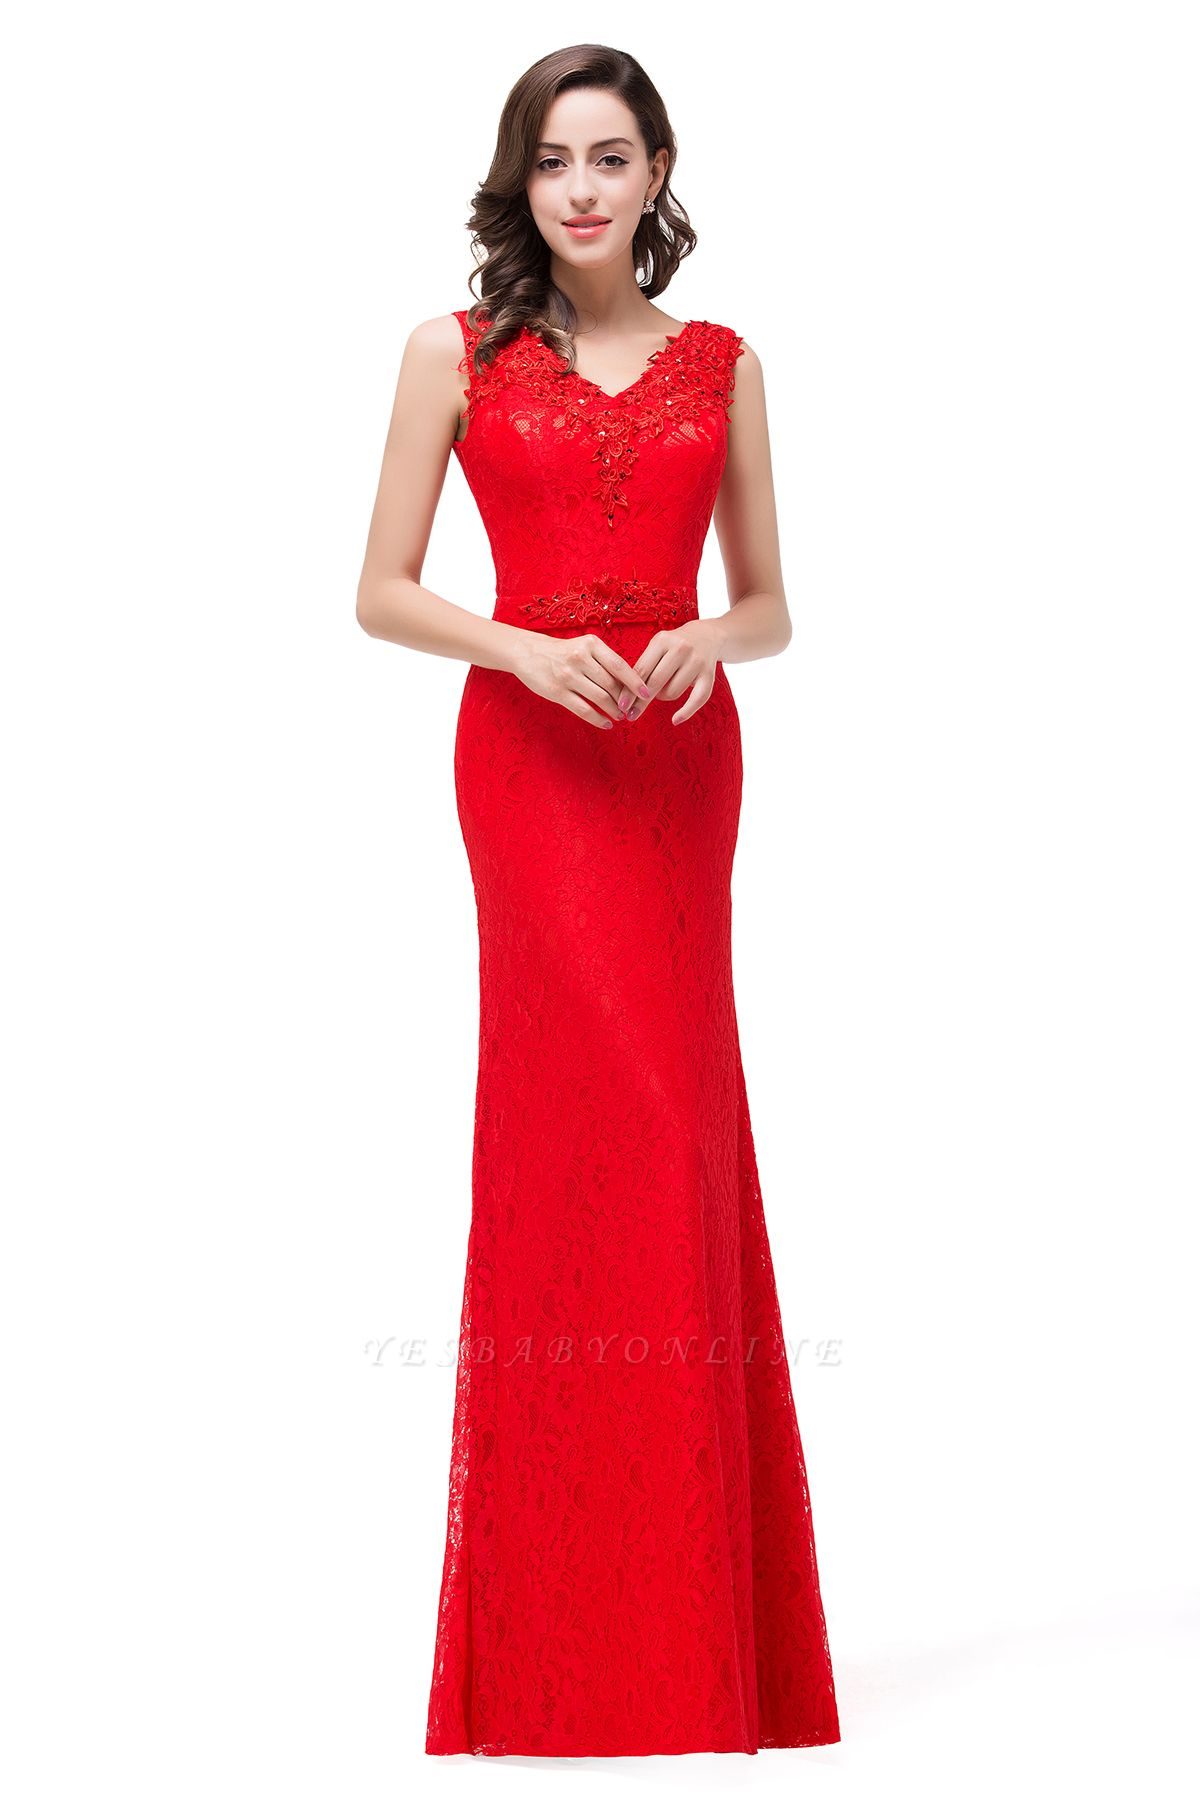 Long V-neck Floor-length Red Two-straps Sleeveless Prom Dress